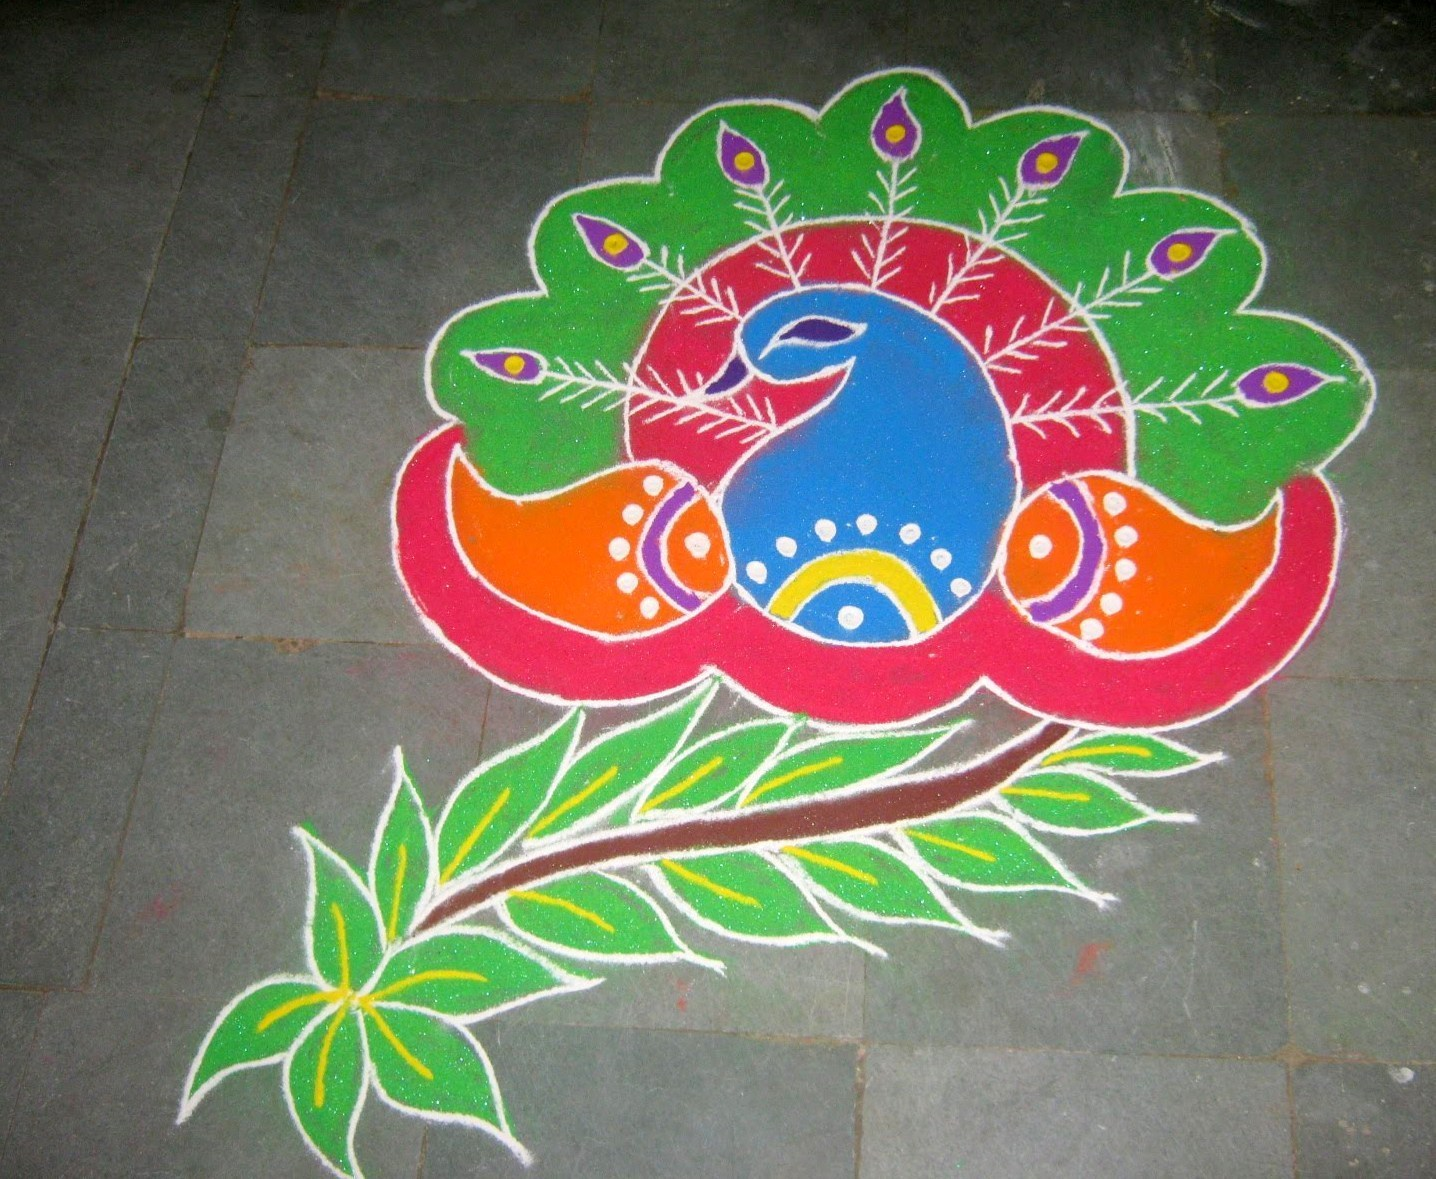 rangoli designs wallpaper stars - photo #9